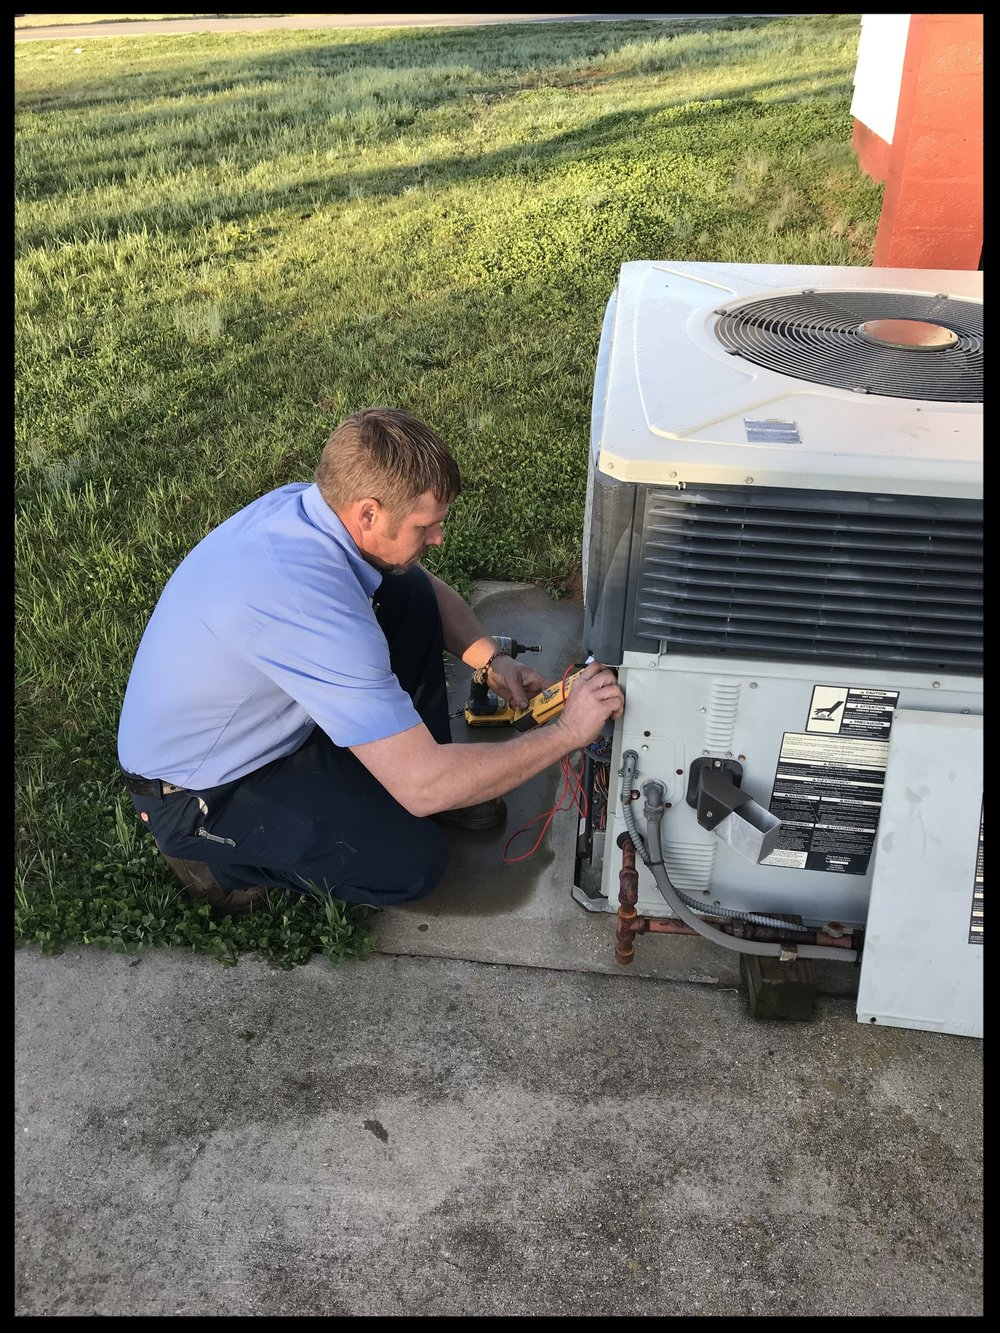 Checking Electrical Connections